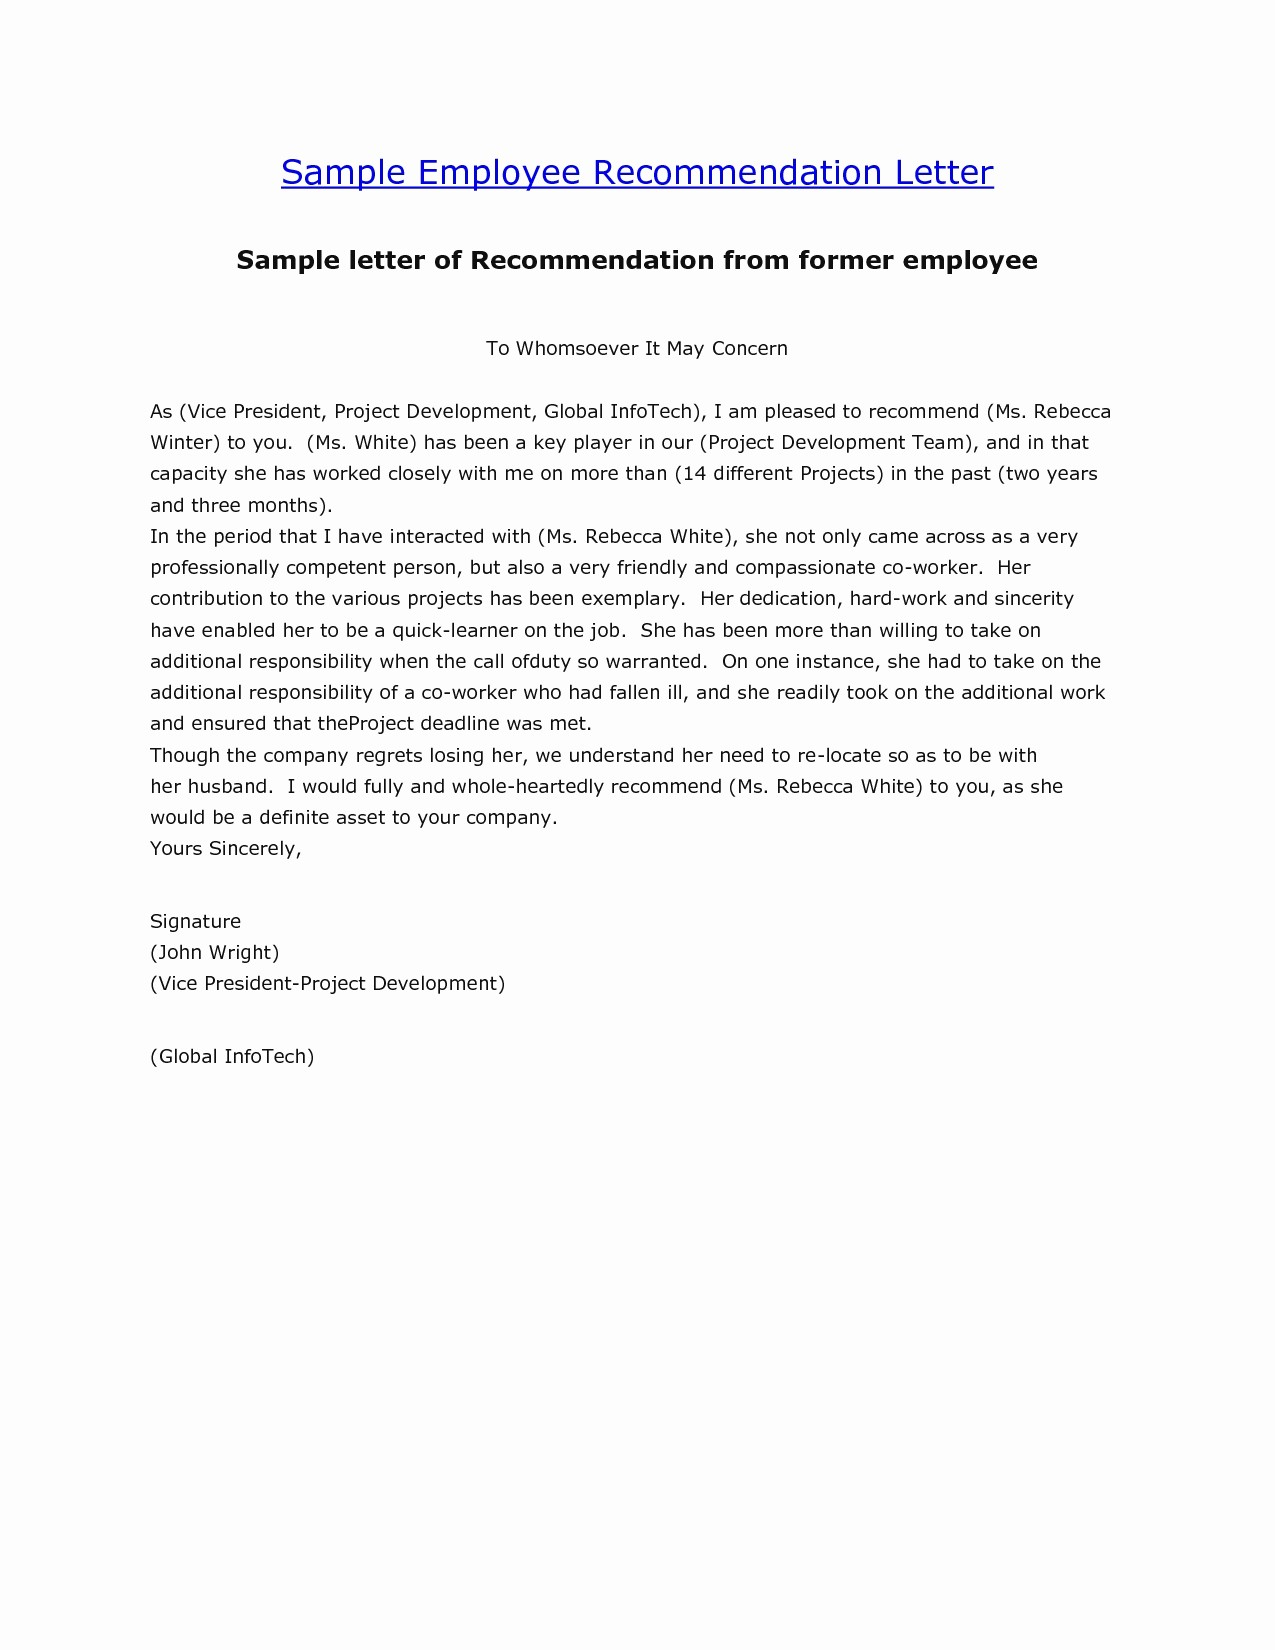 Letter Of Recommendation Employment Template Luxury [free] Letter Of Re Mendation Examples Samples